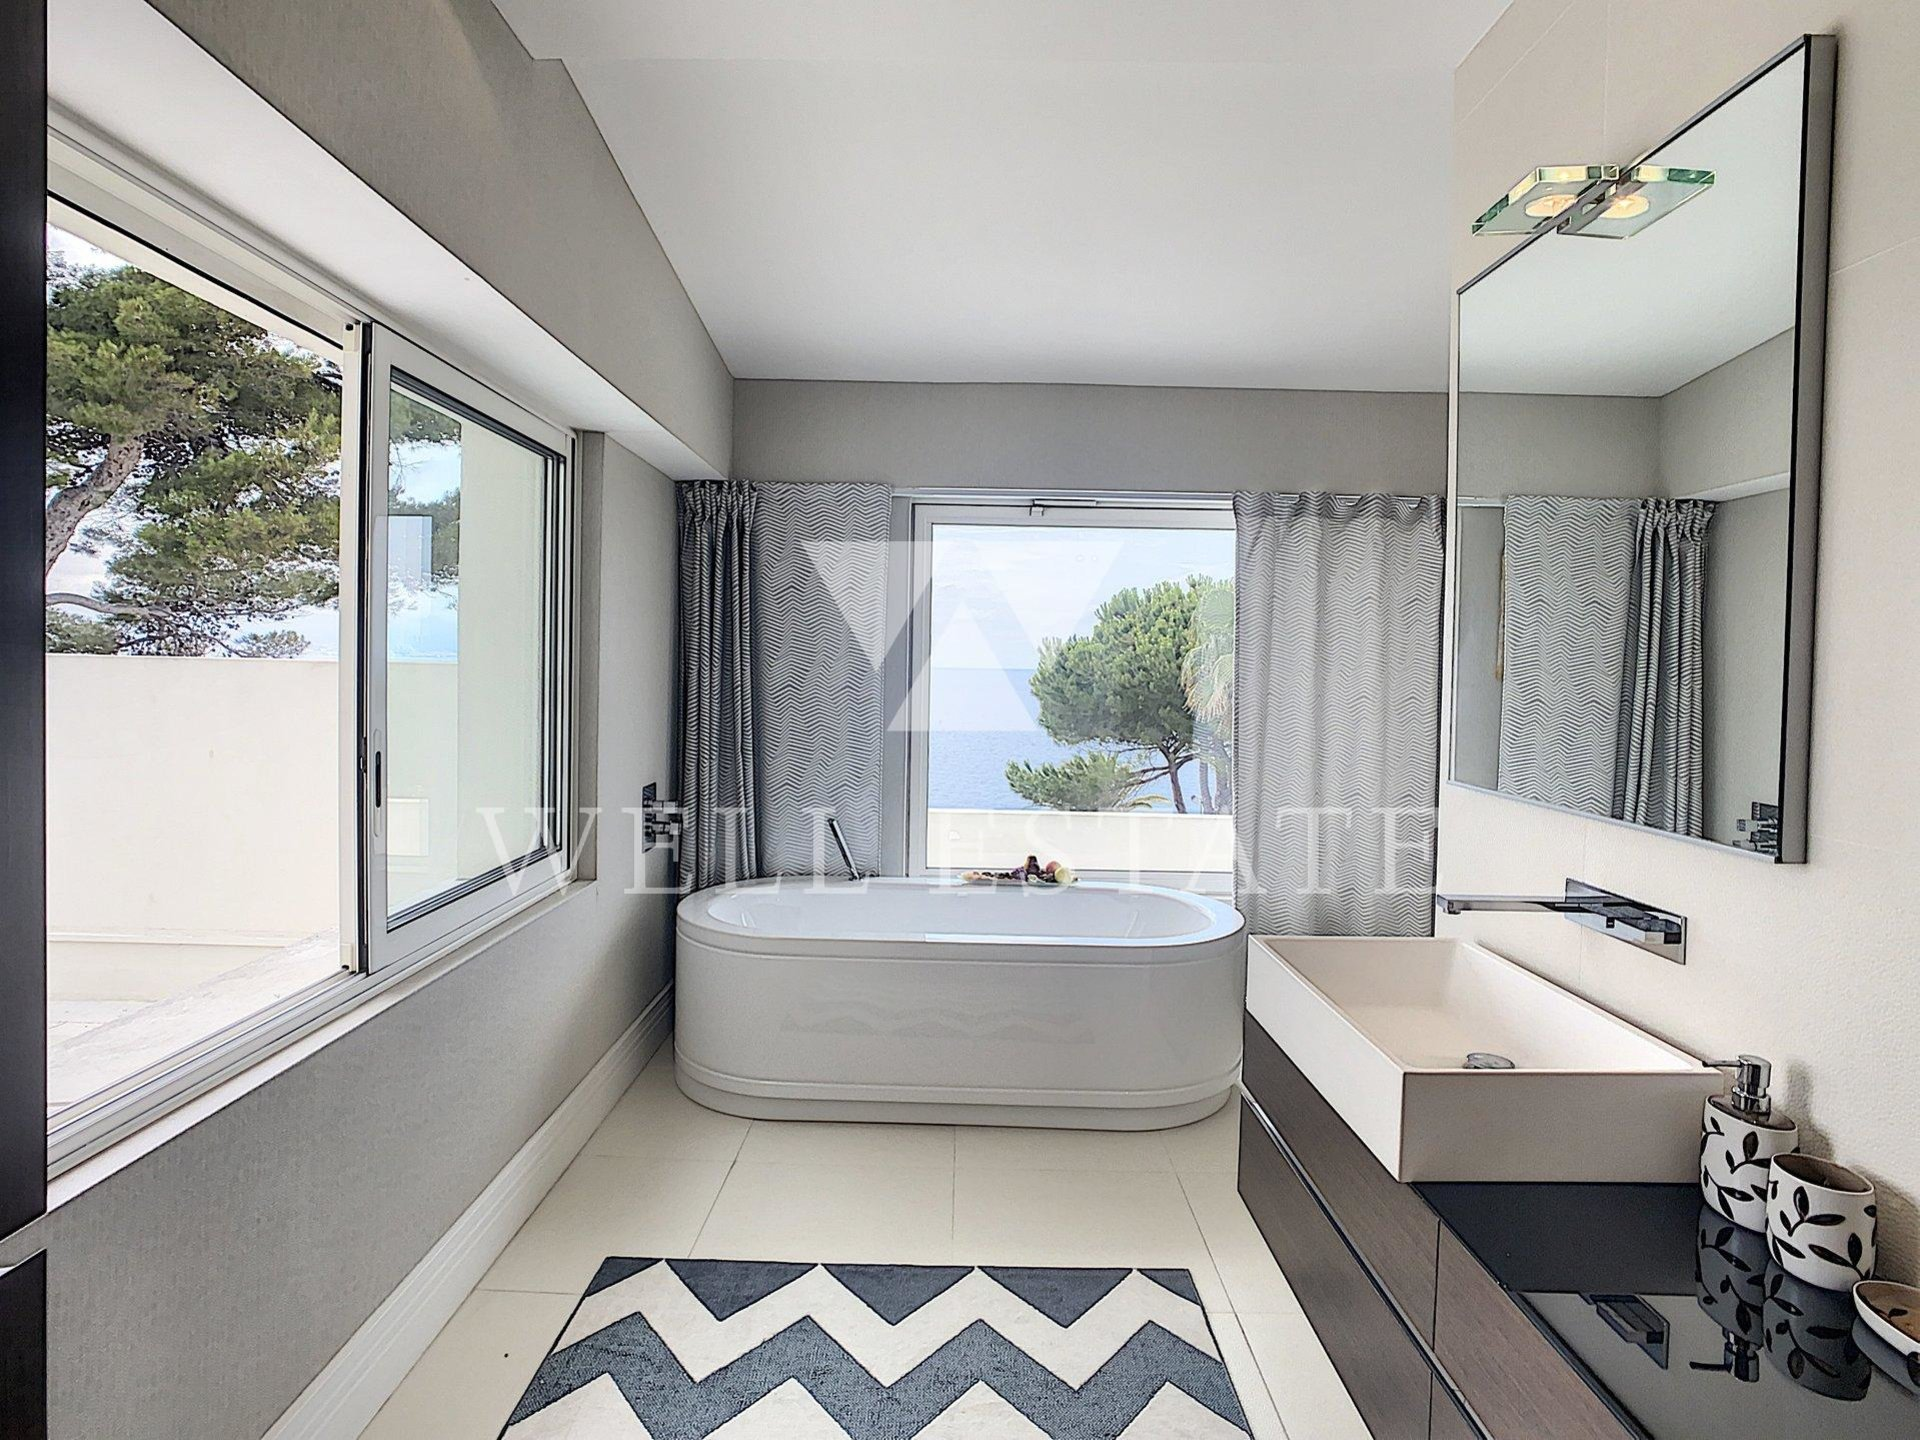 CAP D'ANTIBES MAGNIFICENT LUXURY VILLA 550M2 FACING THE SEA WITH SWIMMING POOL